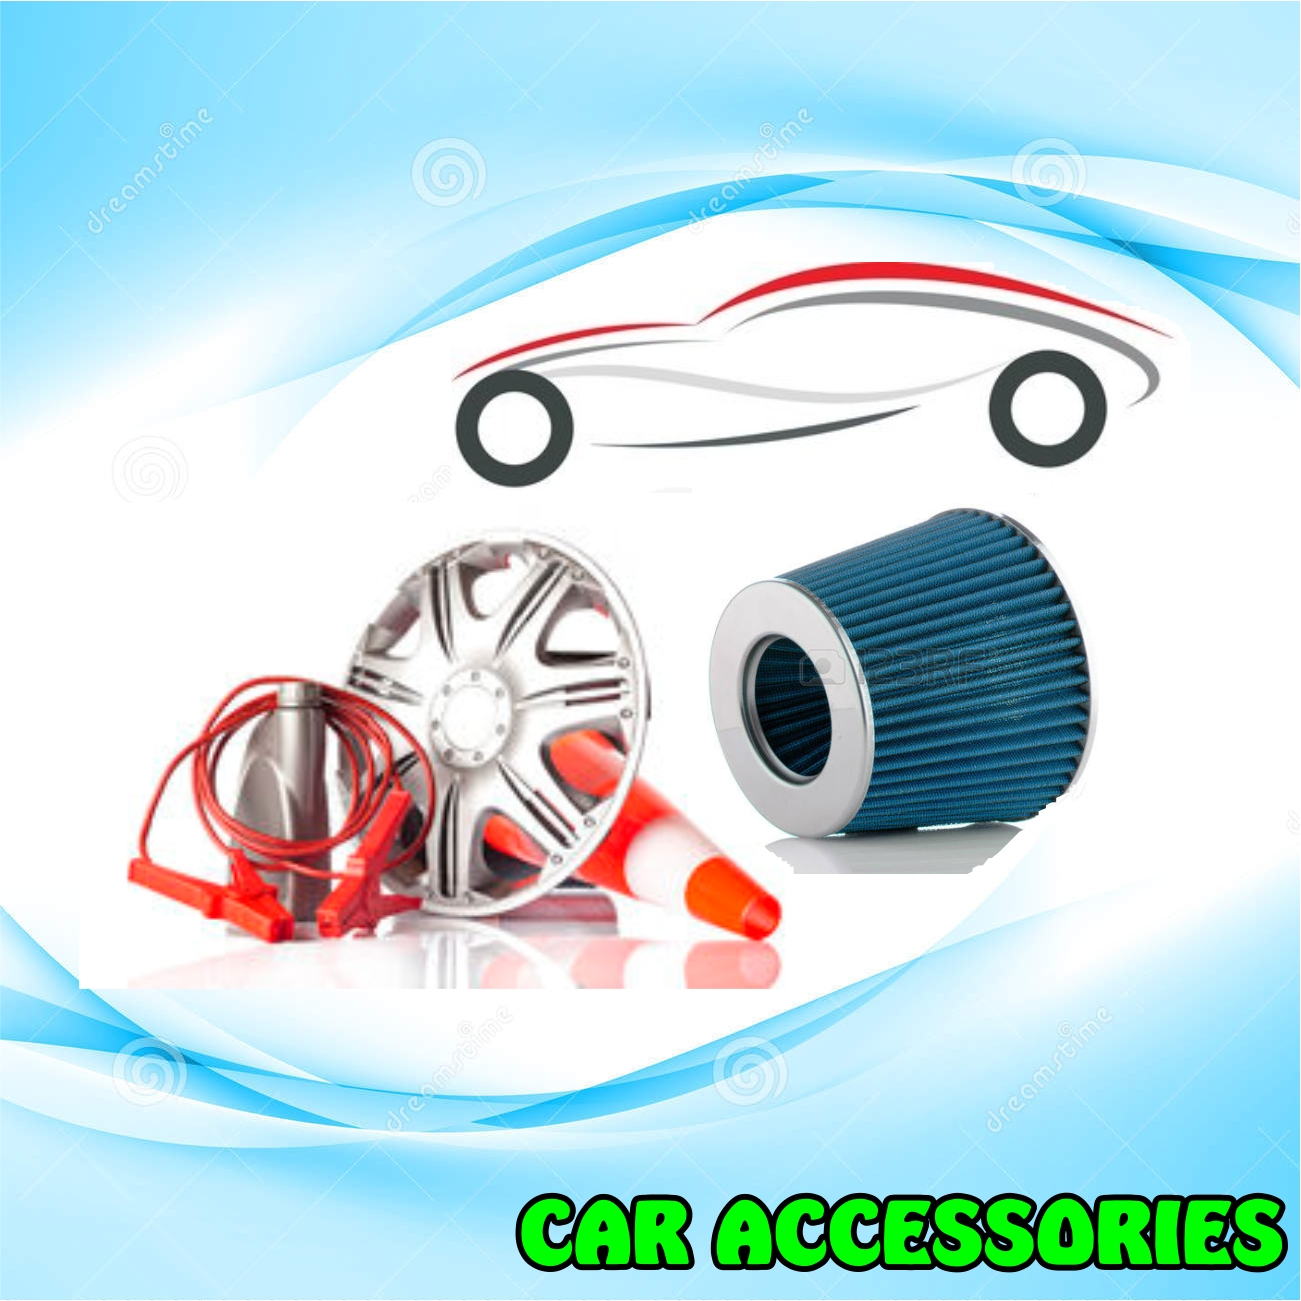 CLICK ME  CAR ACCESSORIES GRAVITY AUDIO PHOENIX DURBAN CONE FILTERS SEAT COVERS TAIL PIECE DOOR PIN GEAR KNOBS GRAVITY 0315072463 GRAVITY CAR ACCESSORIE STORE IN DURBAN 0315072736